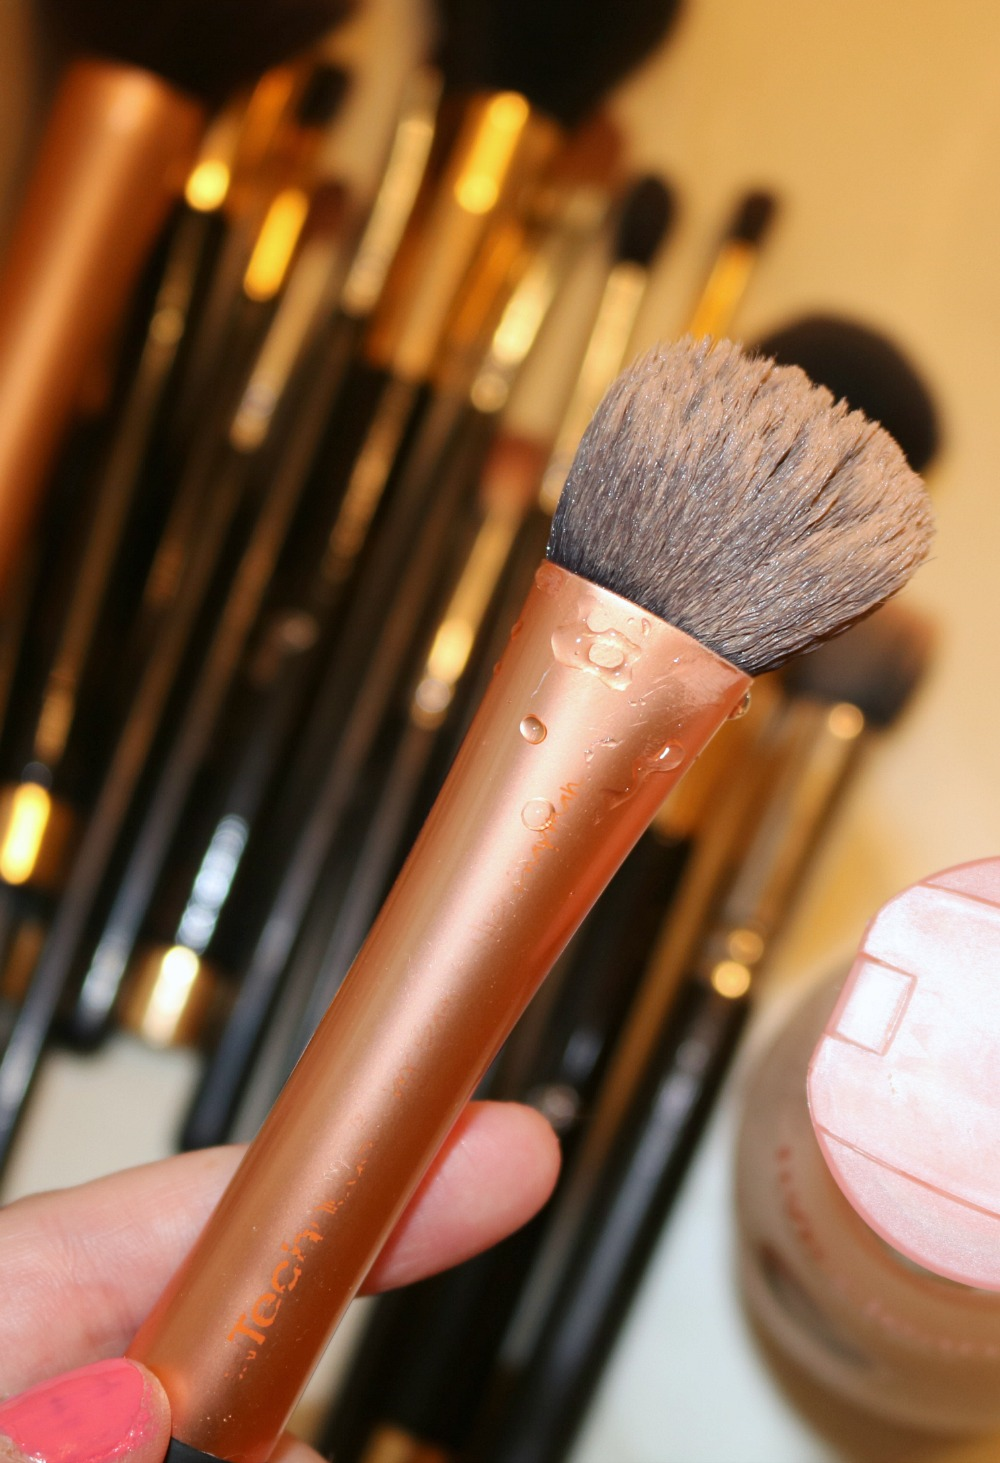 Best Makeup Brush Cleanser? Live Clean Coconut Milk Shampoo I DreaminLace.com #Makeup #CrueltyFree #BeautyTips